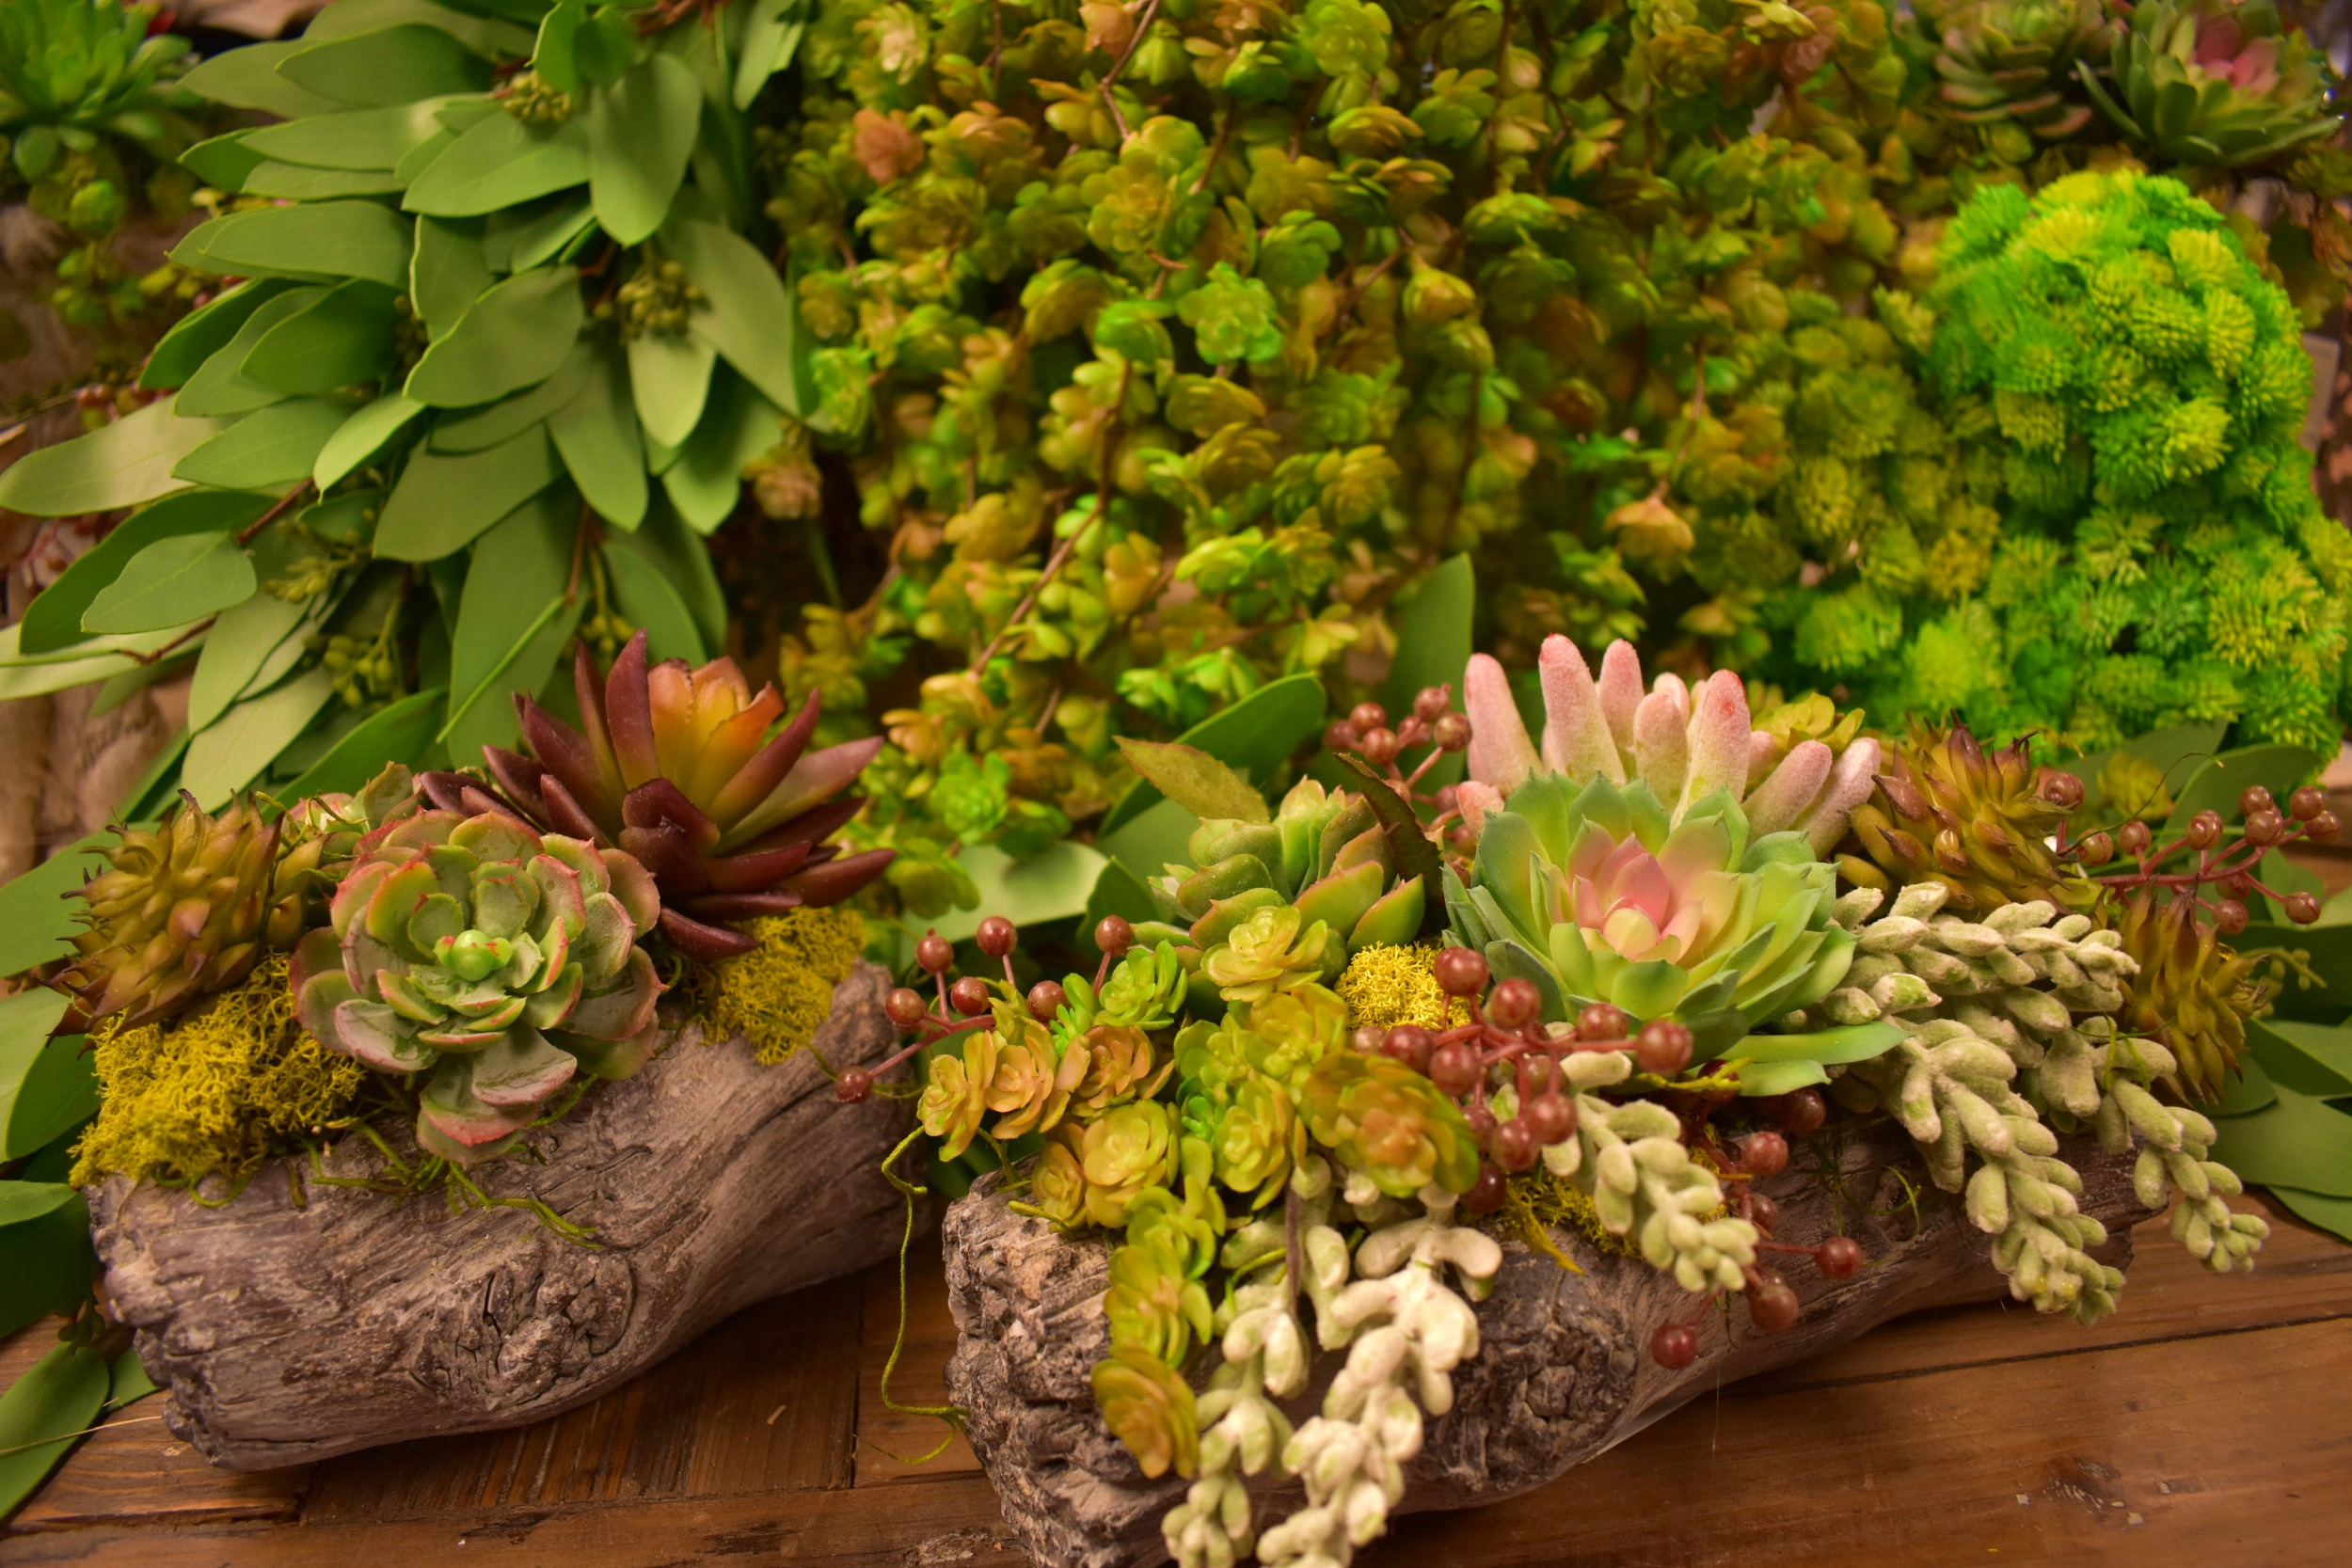 Green up your home with a no-maintenance faux succulent arrangement.